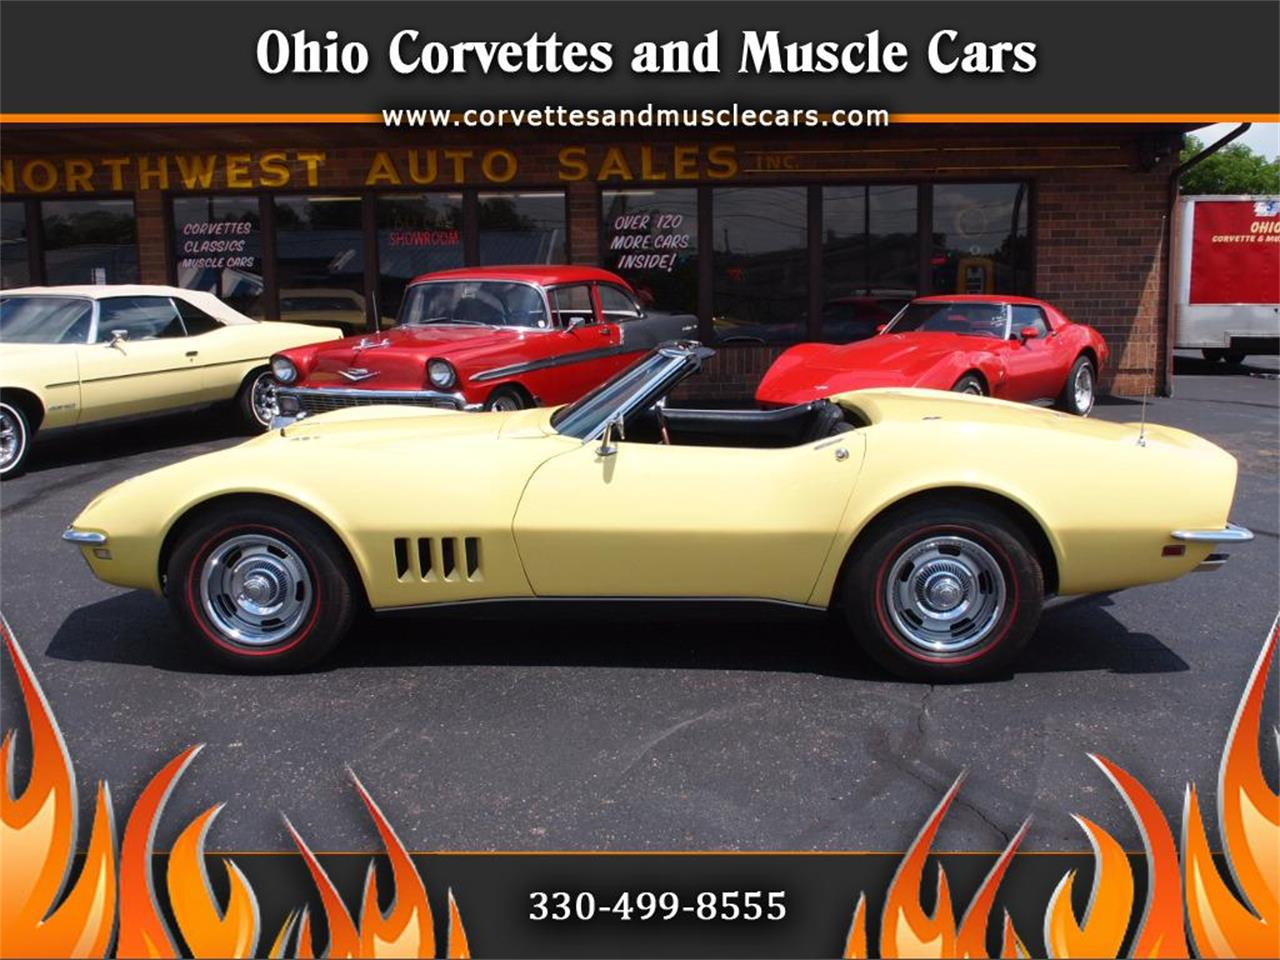 Large Picture of 1968 Chevrolet Corvette - $49,500.00 Offered by Ohio Corvettes and Muscle Cars - LAOB